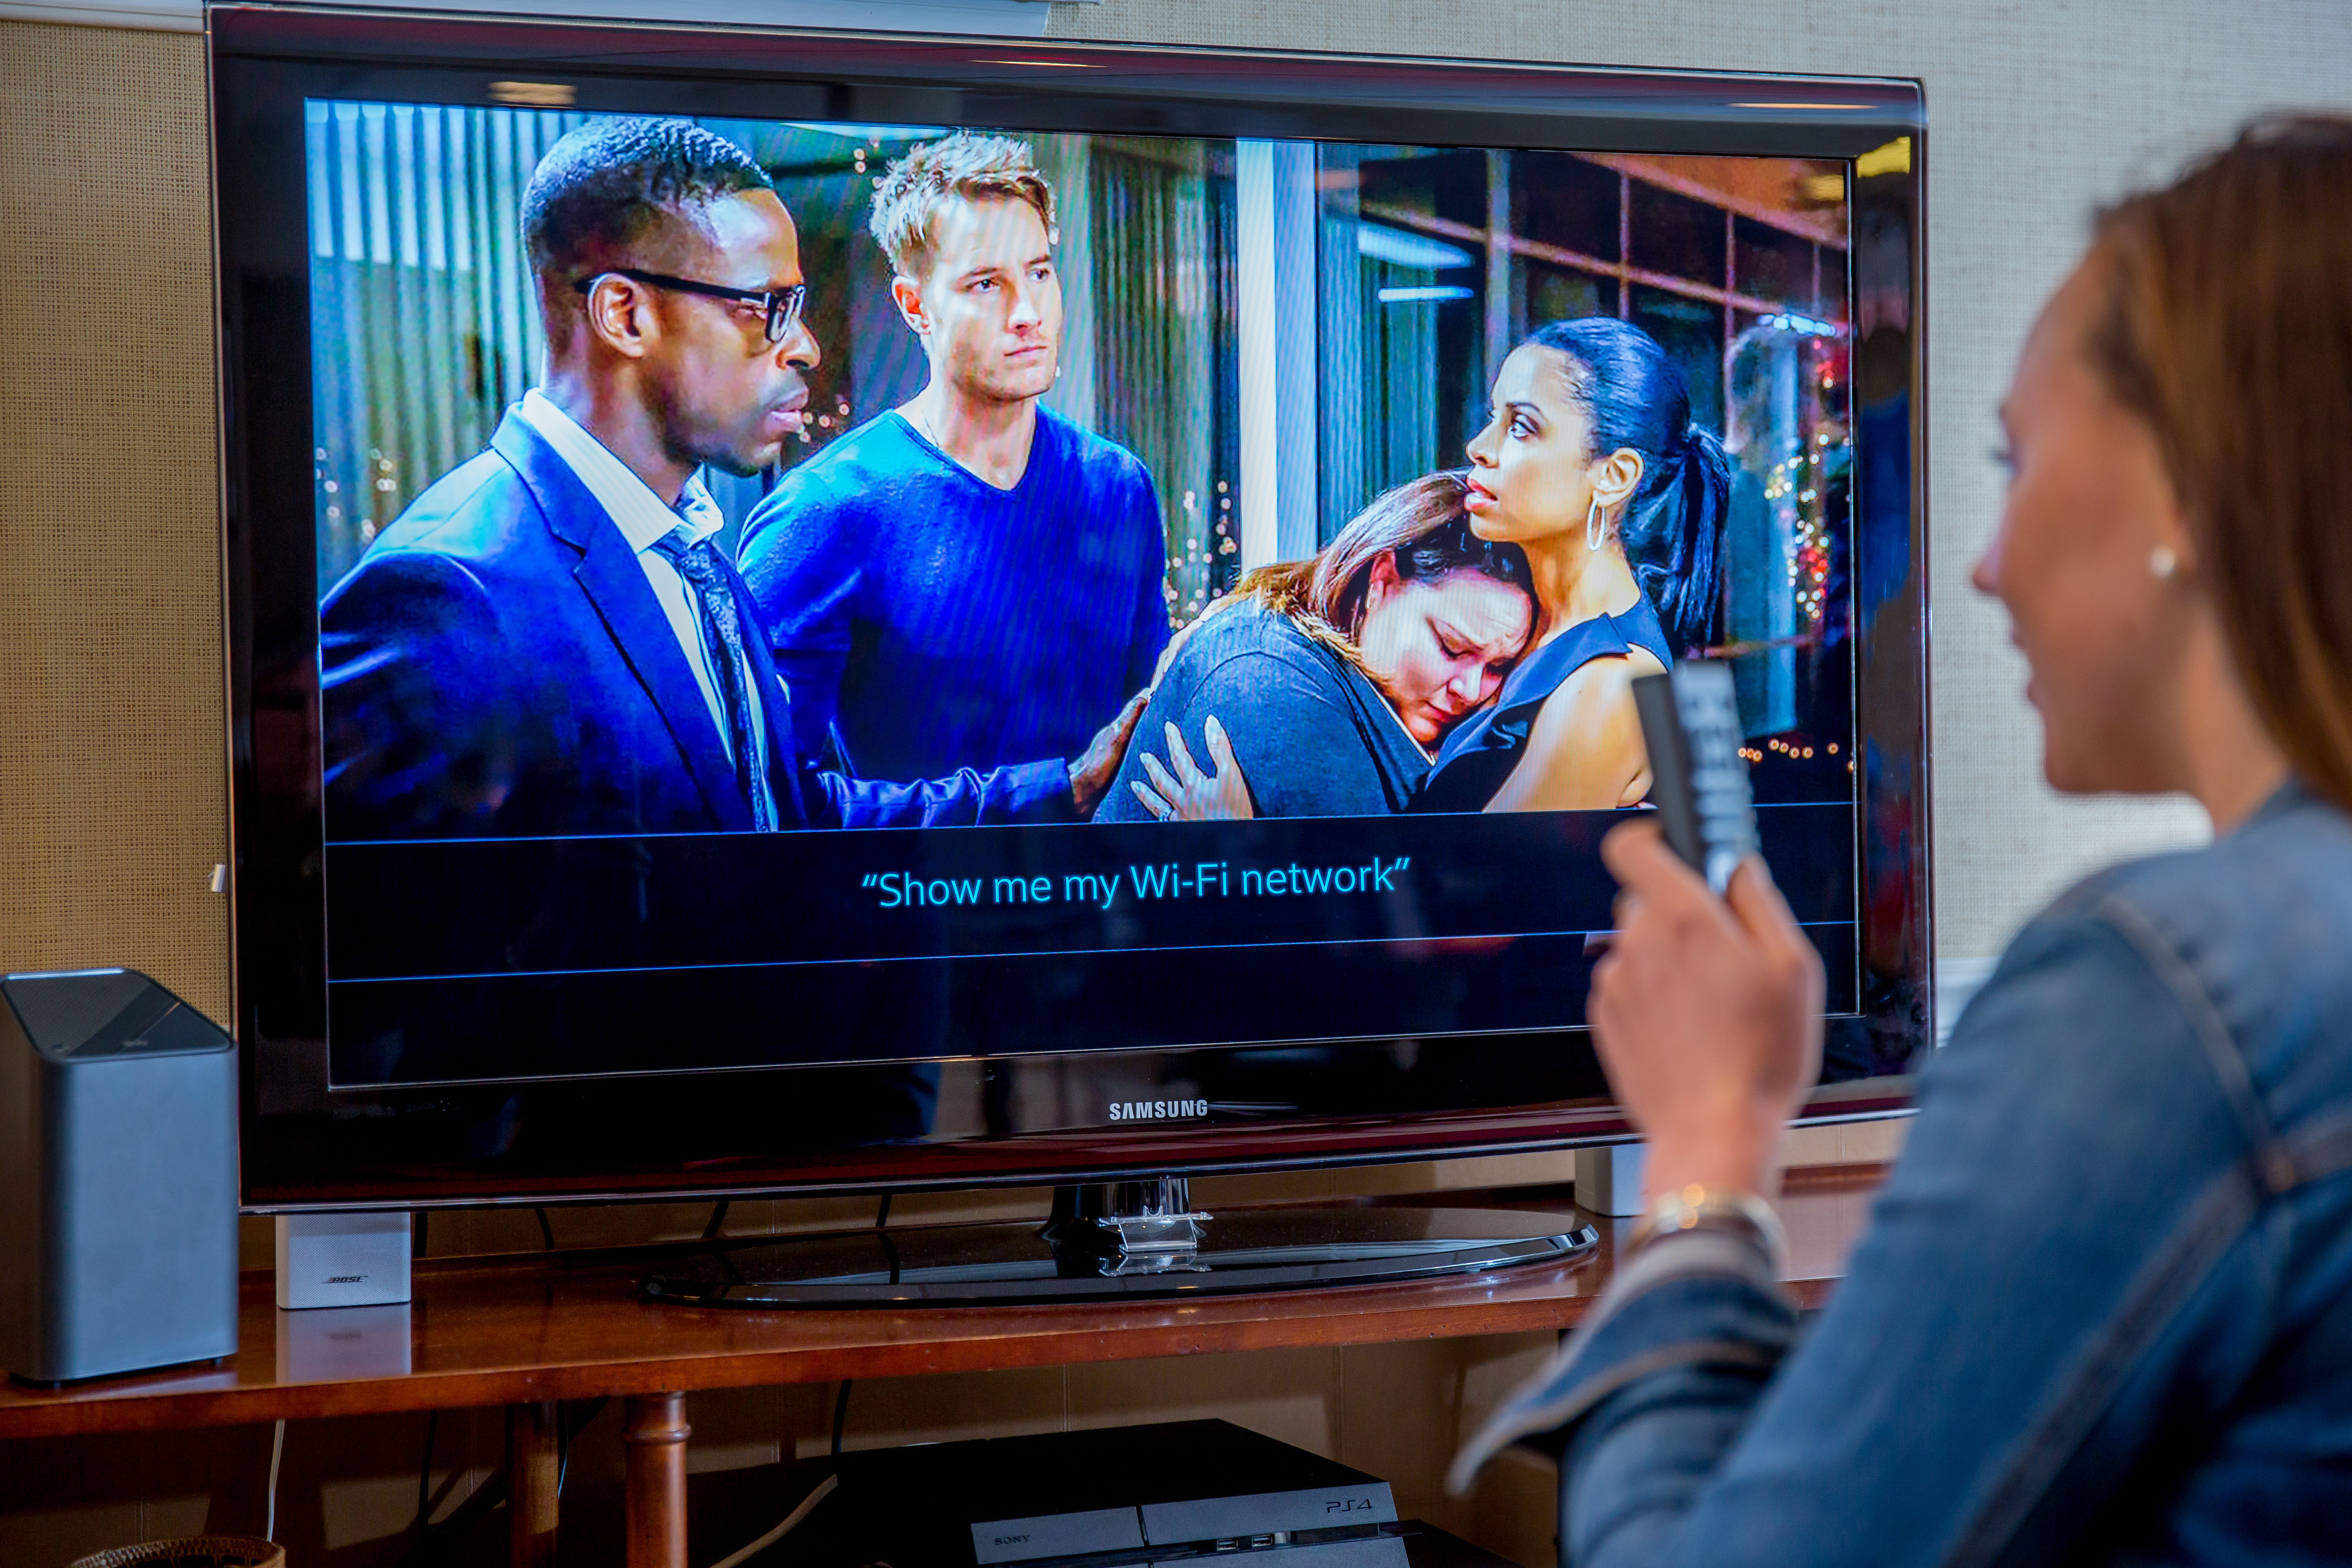 Comcast has launched Xfinity xFi, a new and personalized Wi-Fi experience that provides a simple digital dashboard for customers to manage heir home Wi-Fi network. xFi can be accessed by applications that span iOS, Android, Web and television, via Xfinity X1 and the X1 voice remote. (Photo: Business Wire)